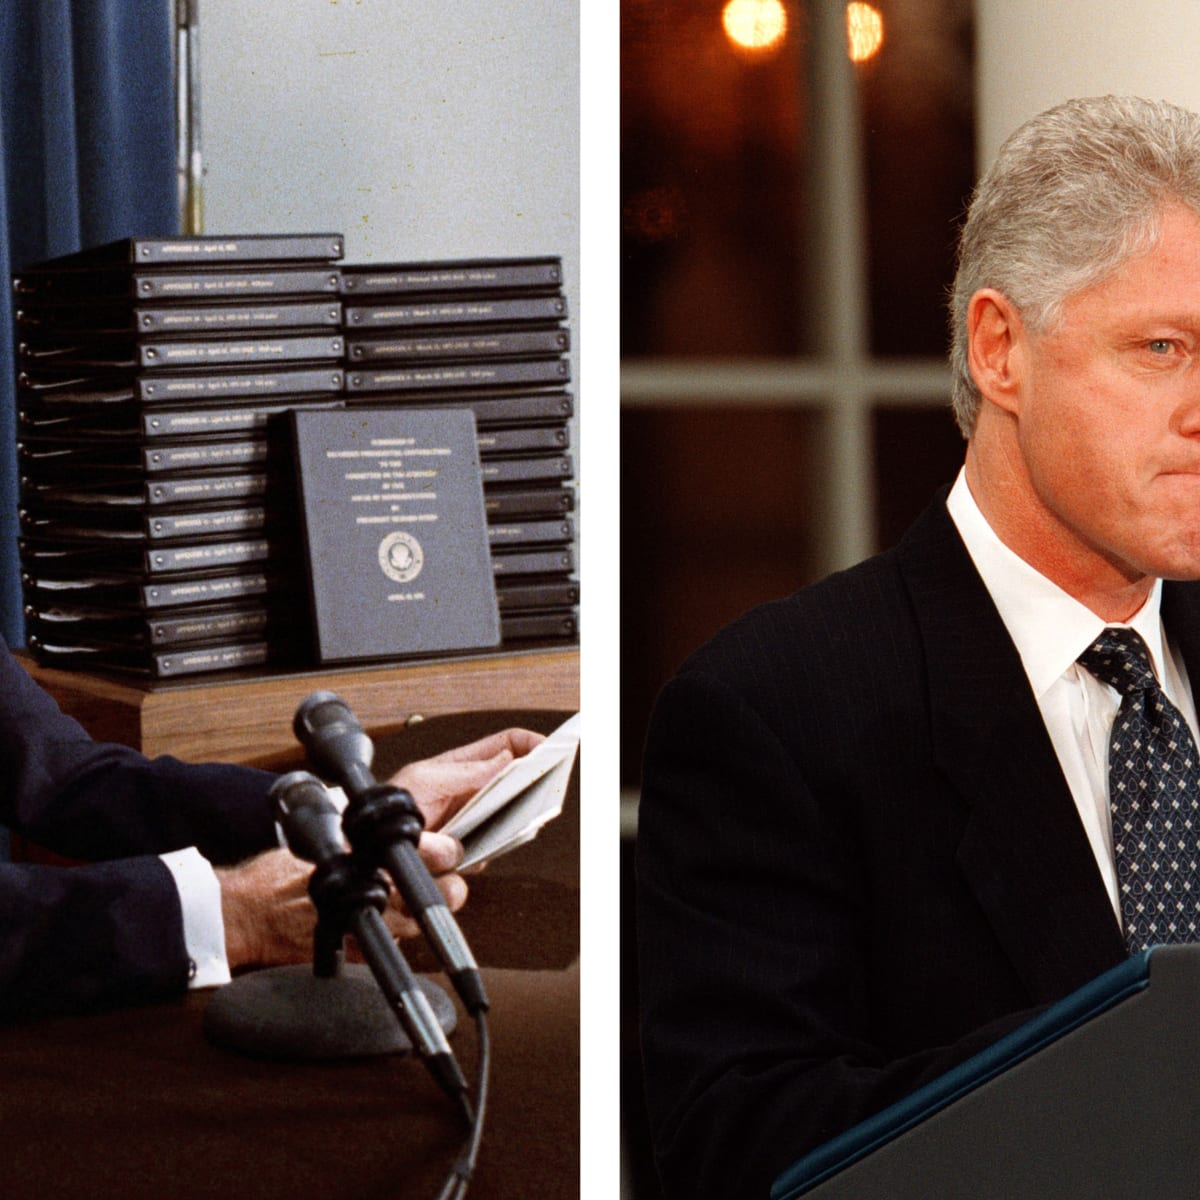 Why Clinton Survived Impeachment While Nixon Resigned After